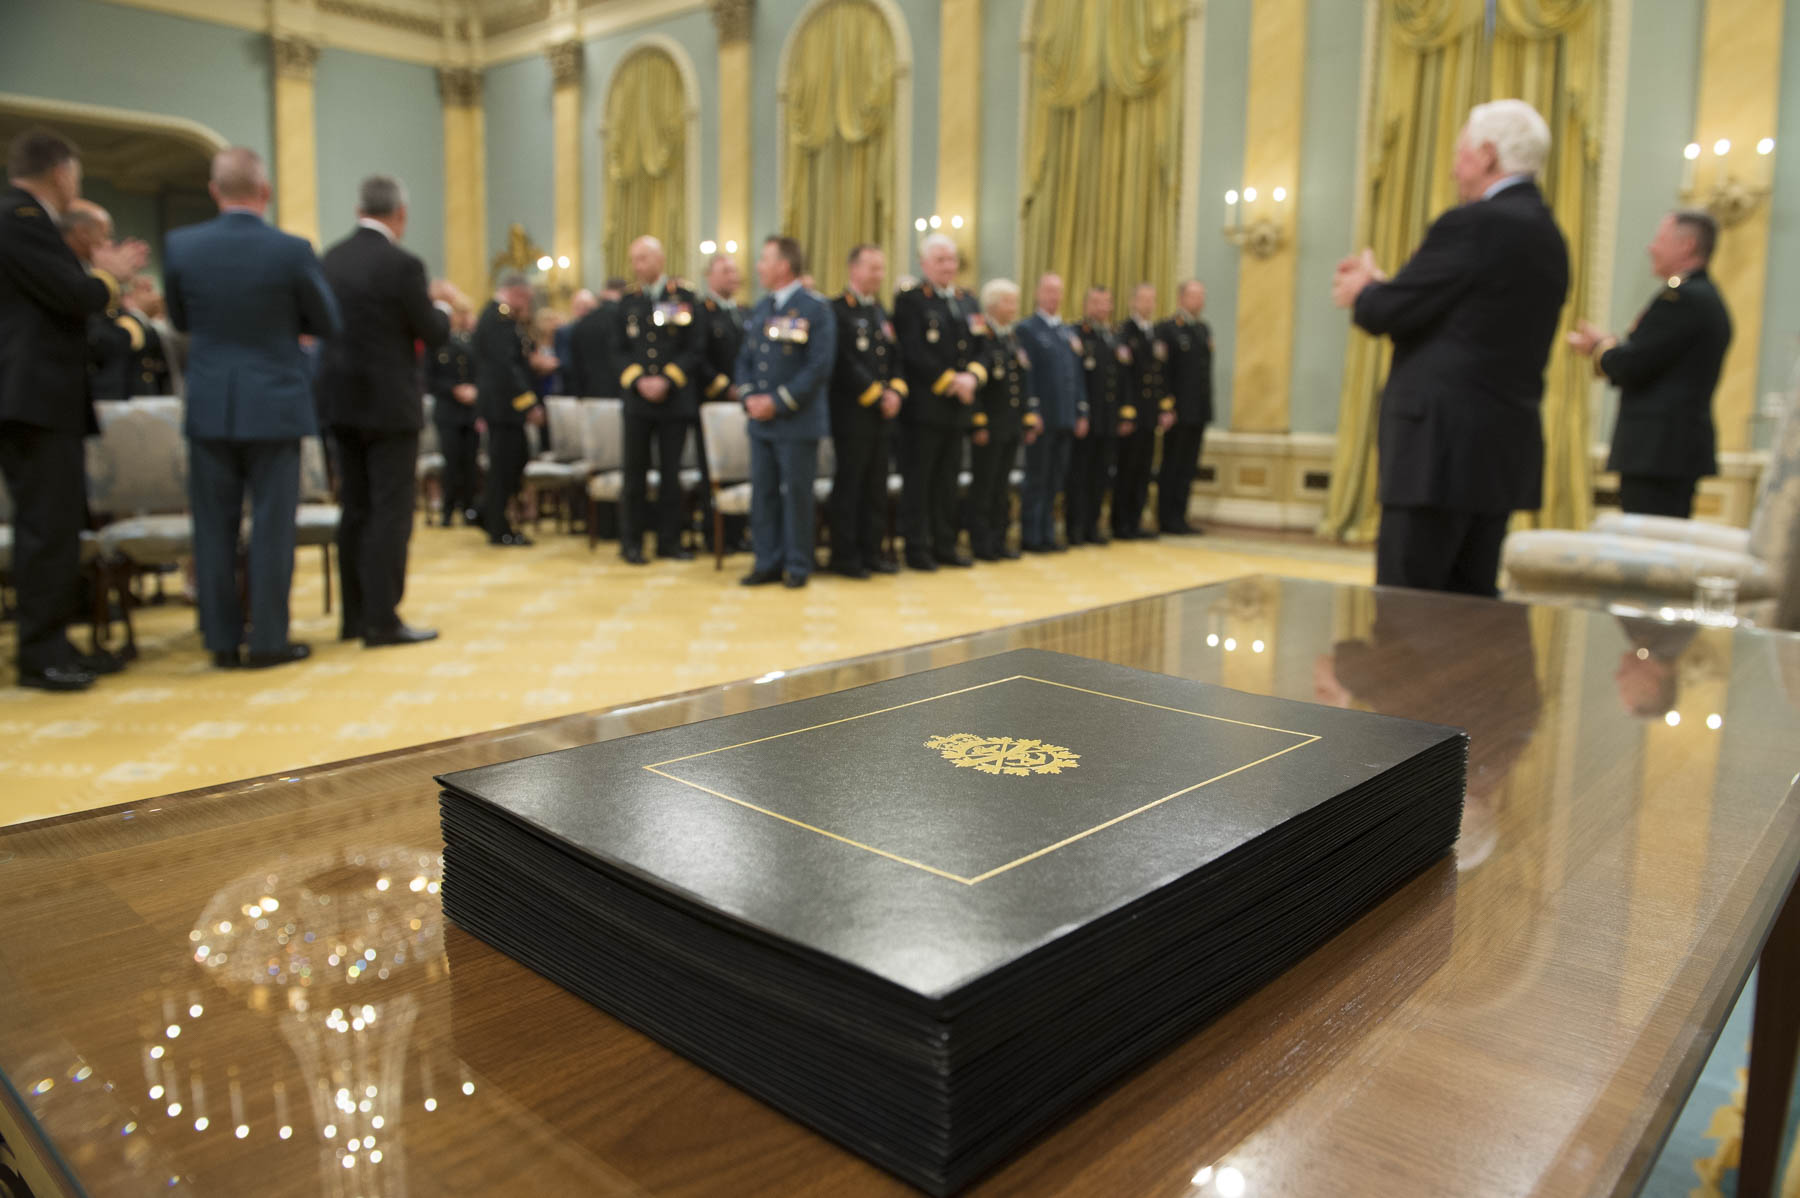 The Governor General and Commander-in-Chief of Canada recognized the promotion of Canadian Armed Forces members during a presentation of scrolls held at Rideau Hall on May 29, 2017.